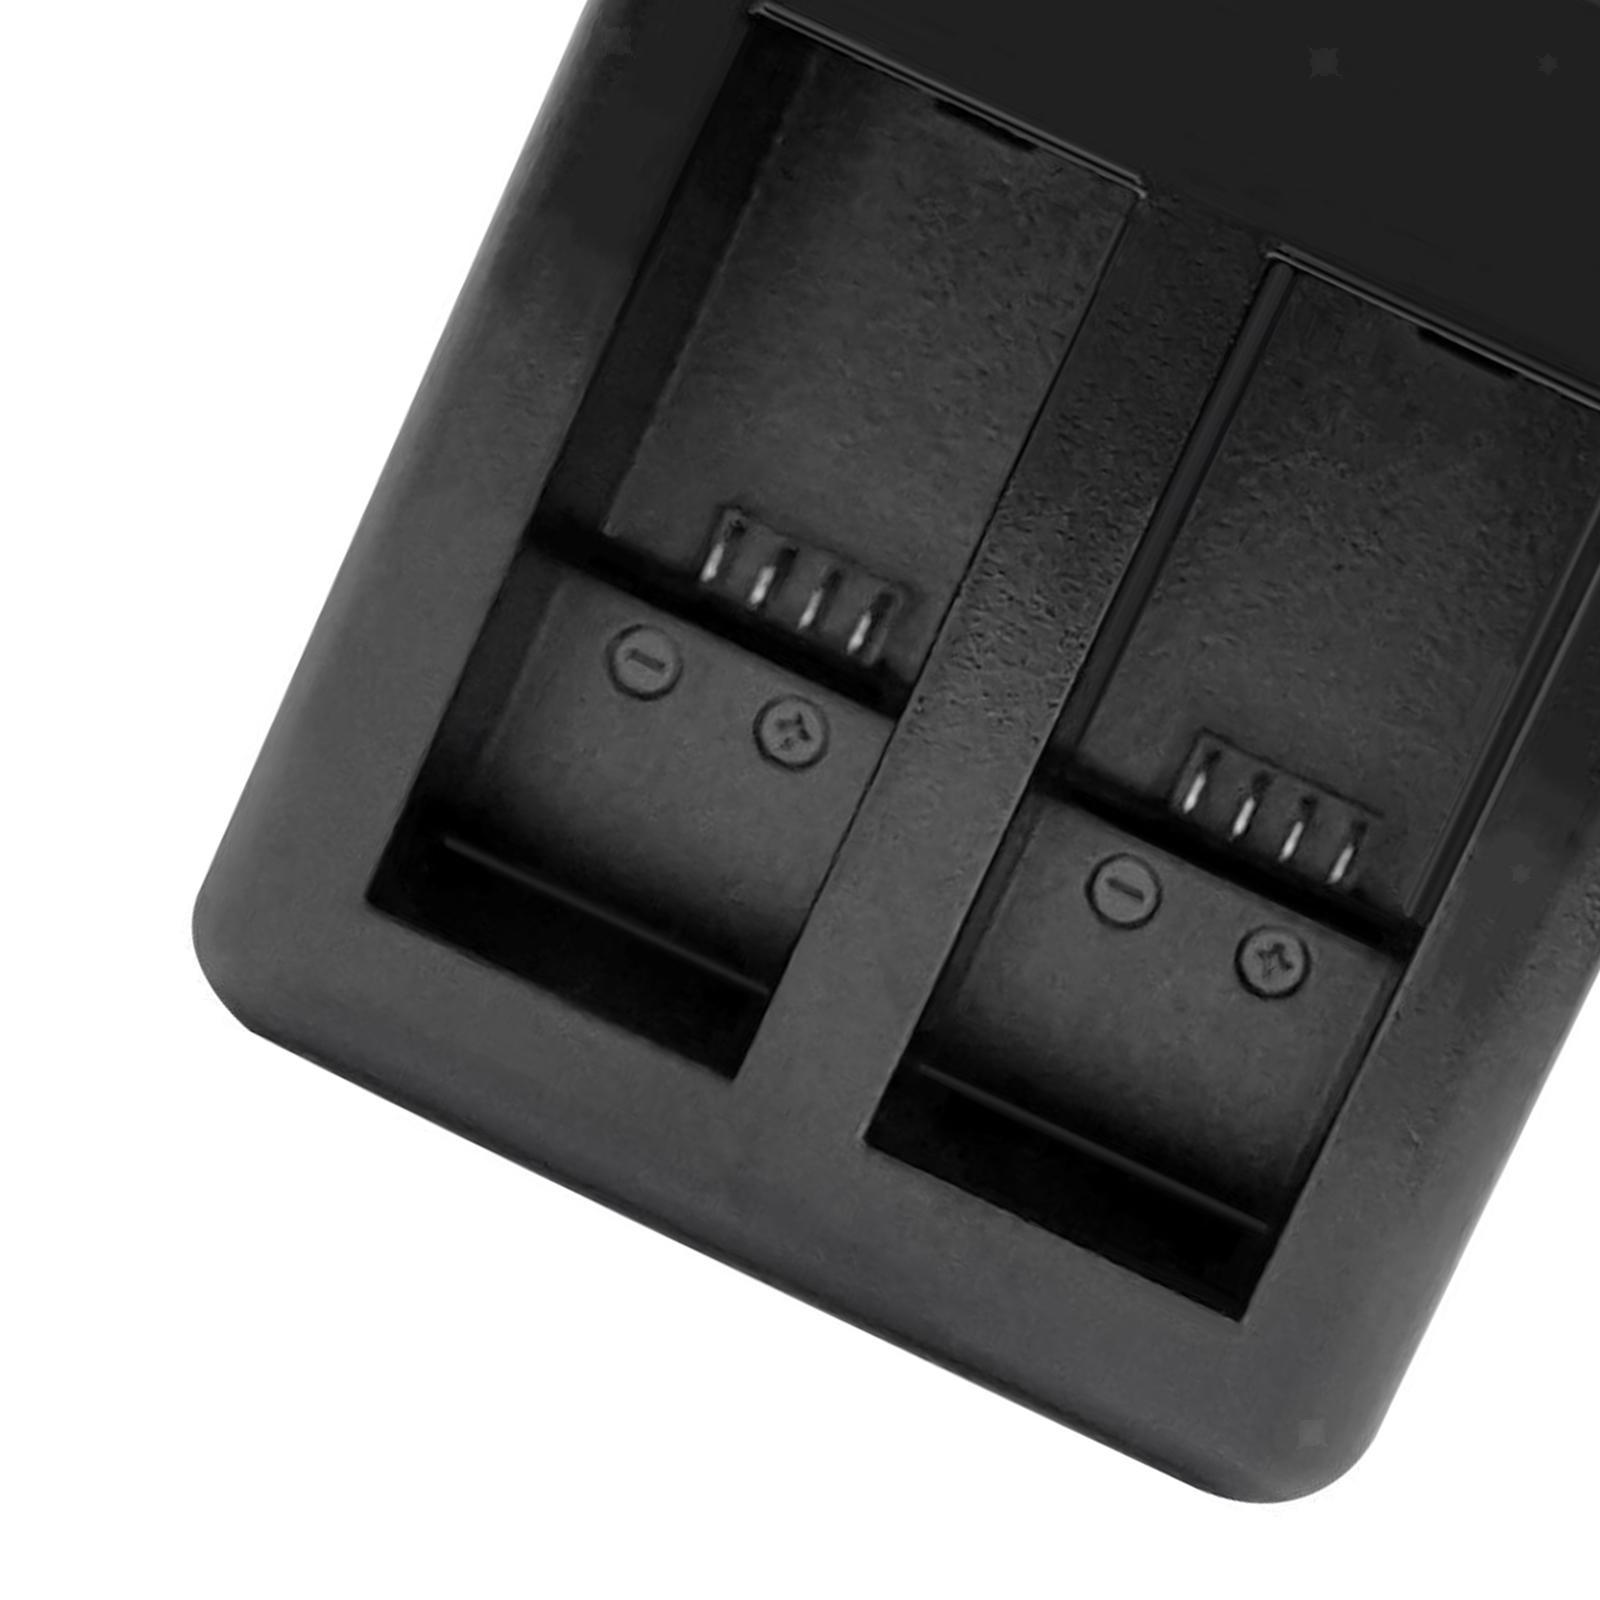 thumbnail 21 - Replace Batteries 1720mAh USB Quick Charger with Cord for   Hero 9 -Black